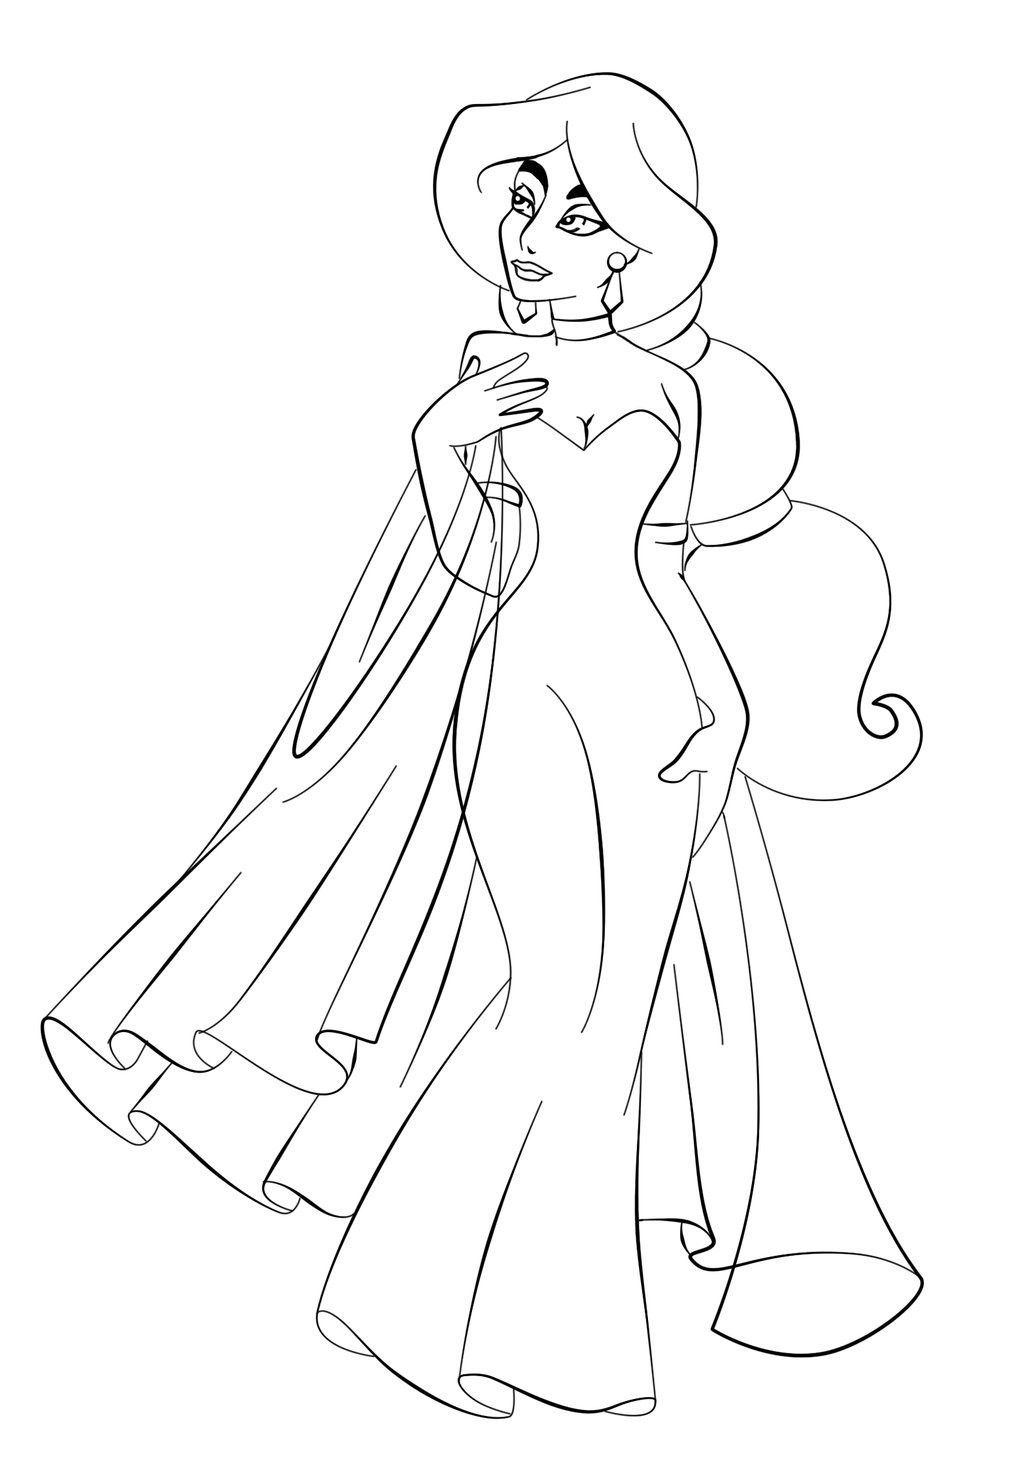 Princess Dress Coloring Pages From The Thousand Photographs Online Concerning Pr Princess Coloring Pages Disney Princess Coloring Pages Disney Coloring Pages